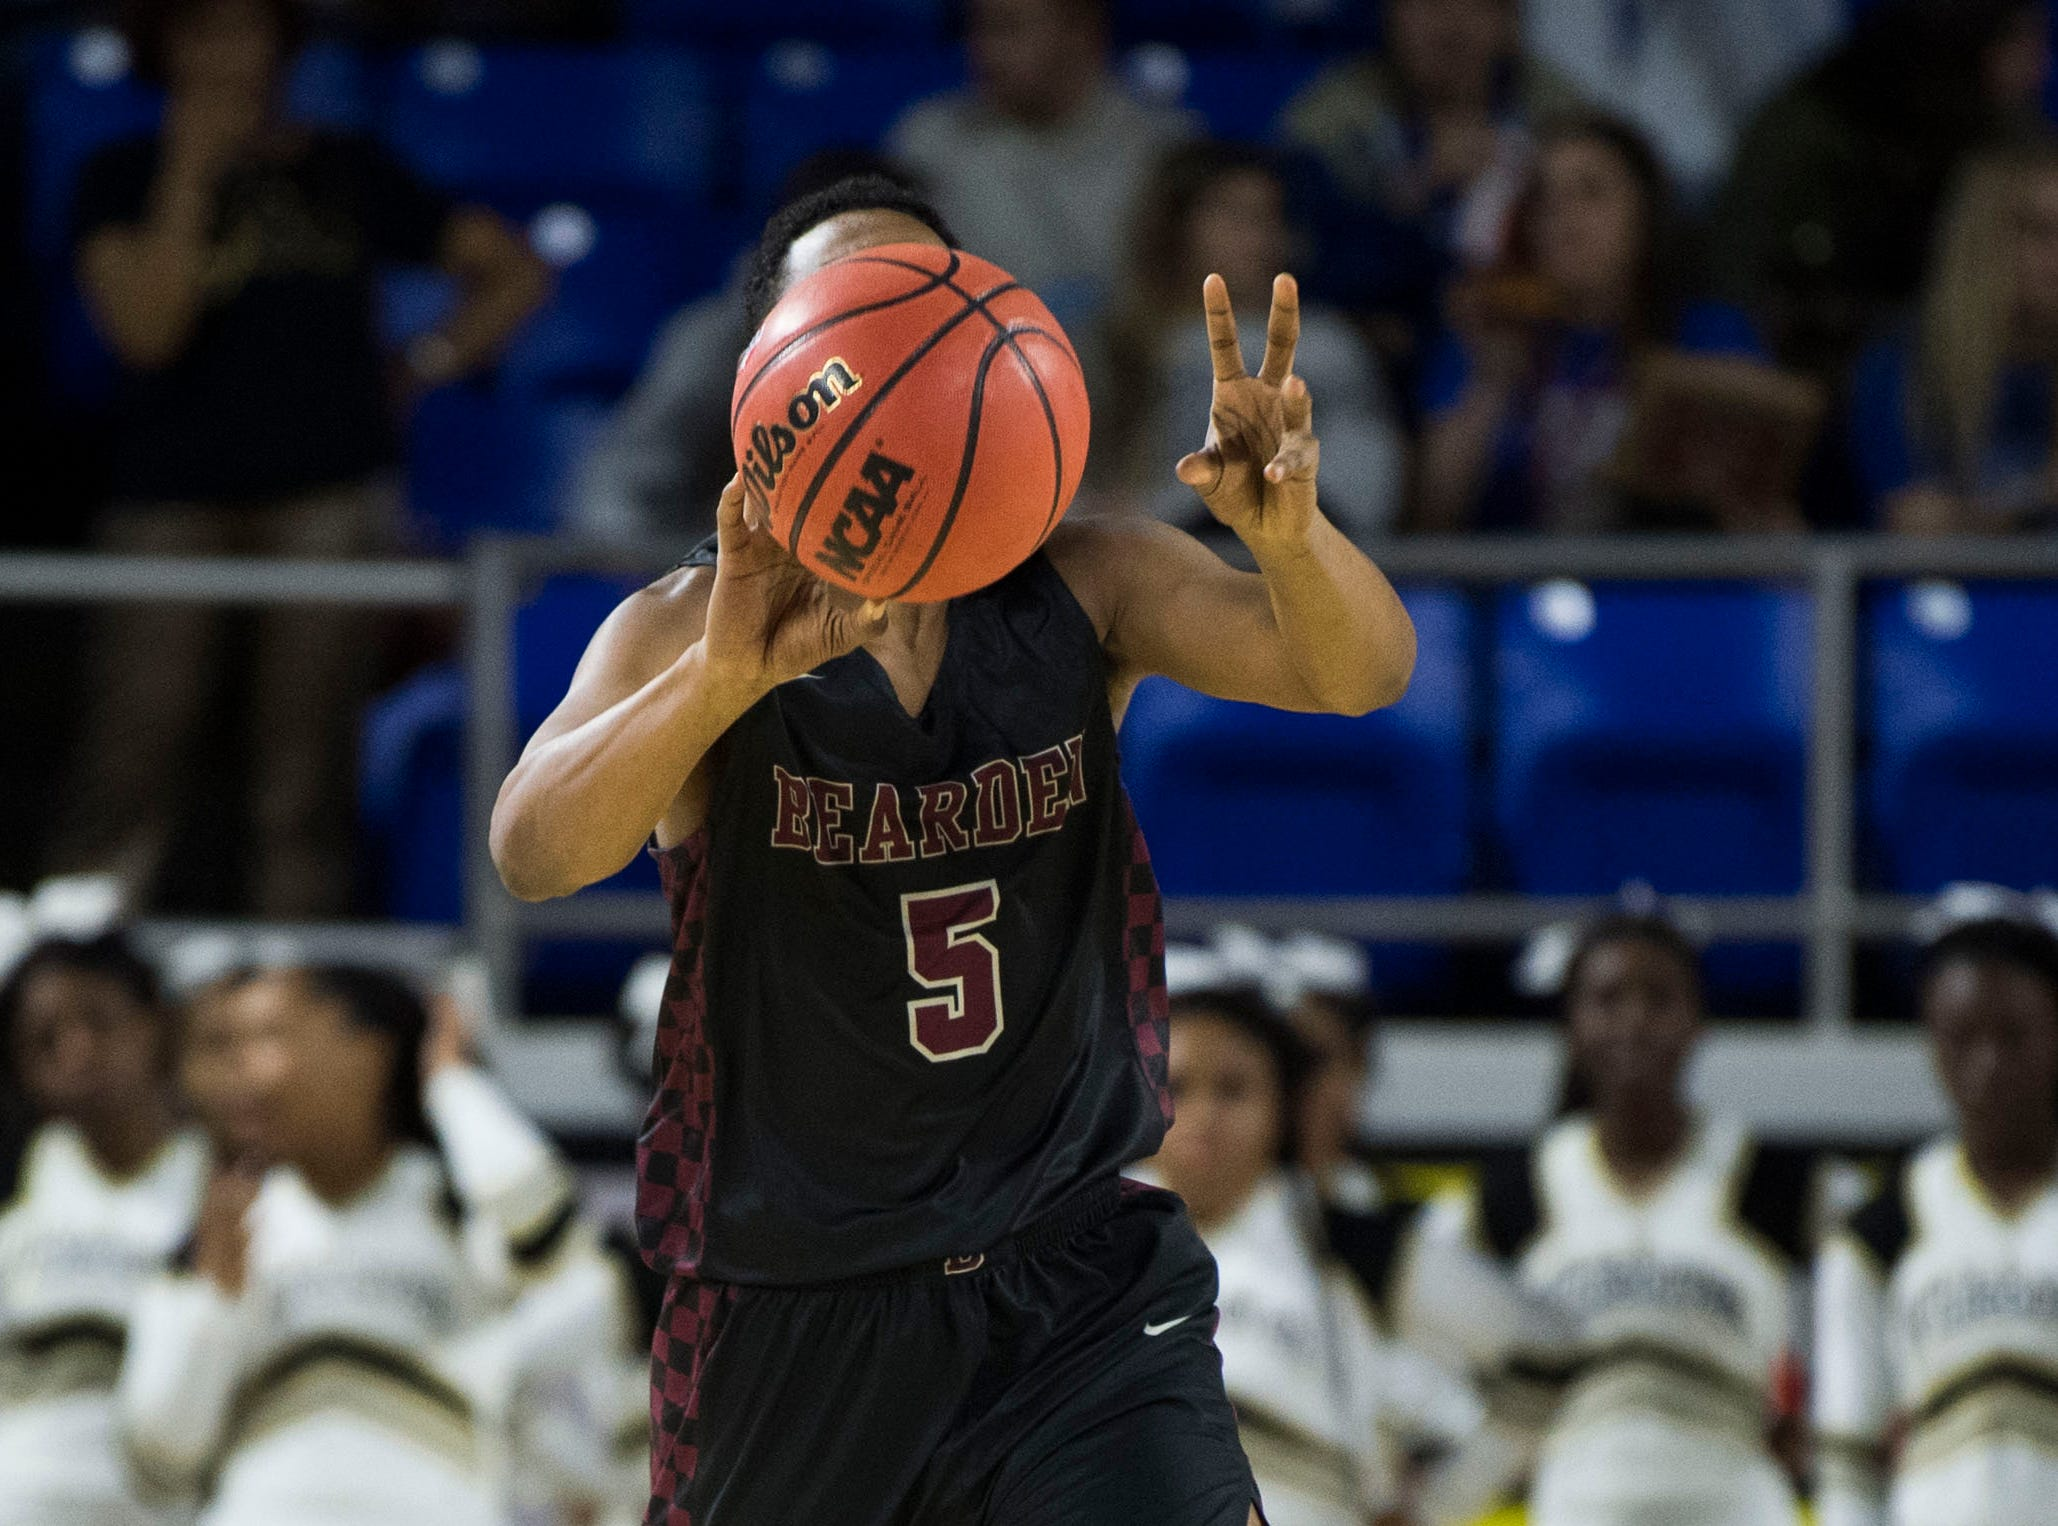 Bearden's Austin Pruitt (5) looks to passduring a TSSAA AAA state semifinal game between Whitehaven and Bearden at the Murphy Center in Murfreesboro, Friday, March 15, 2019. Bearden defeated Whitehaven 76-60.